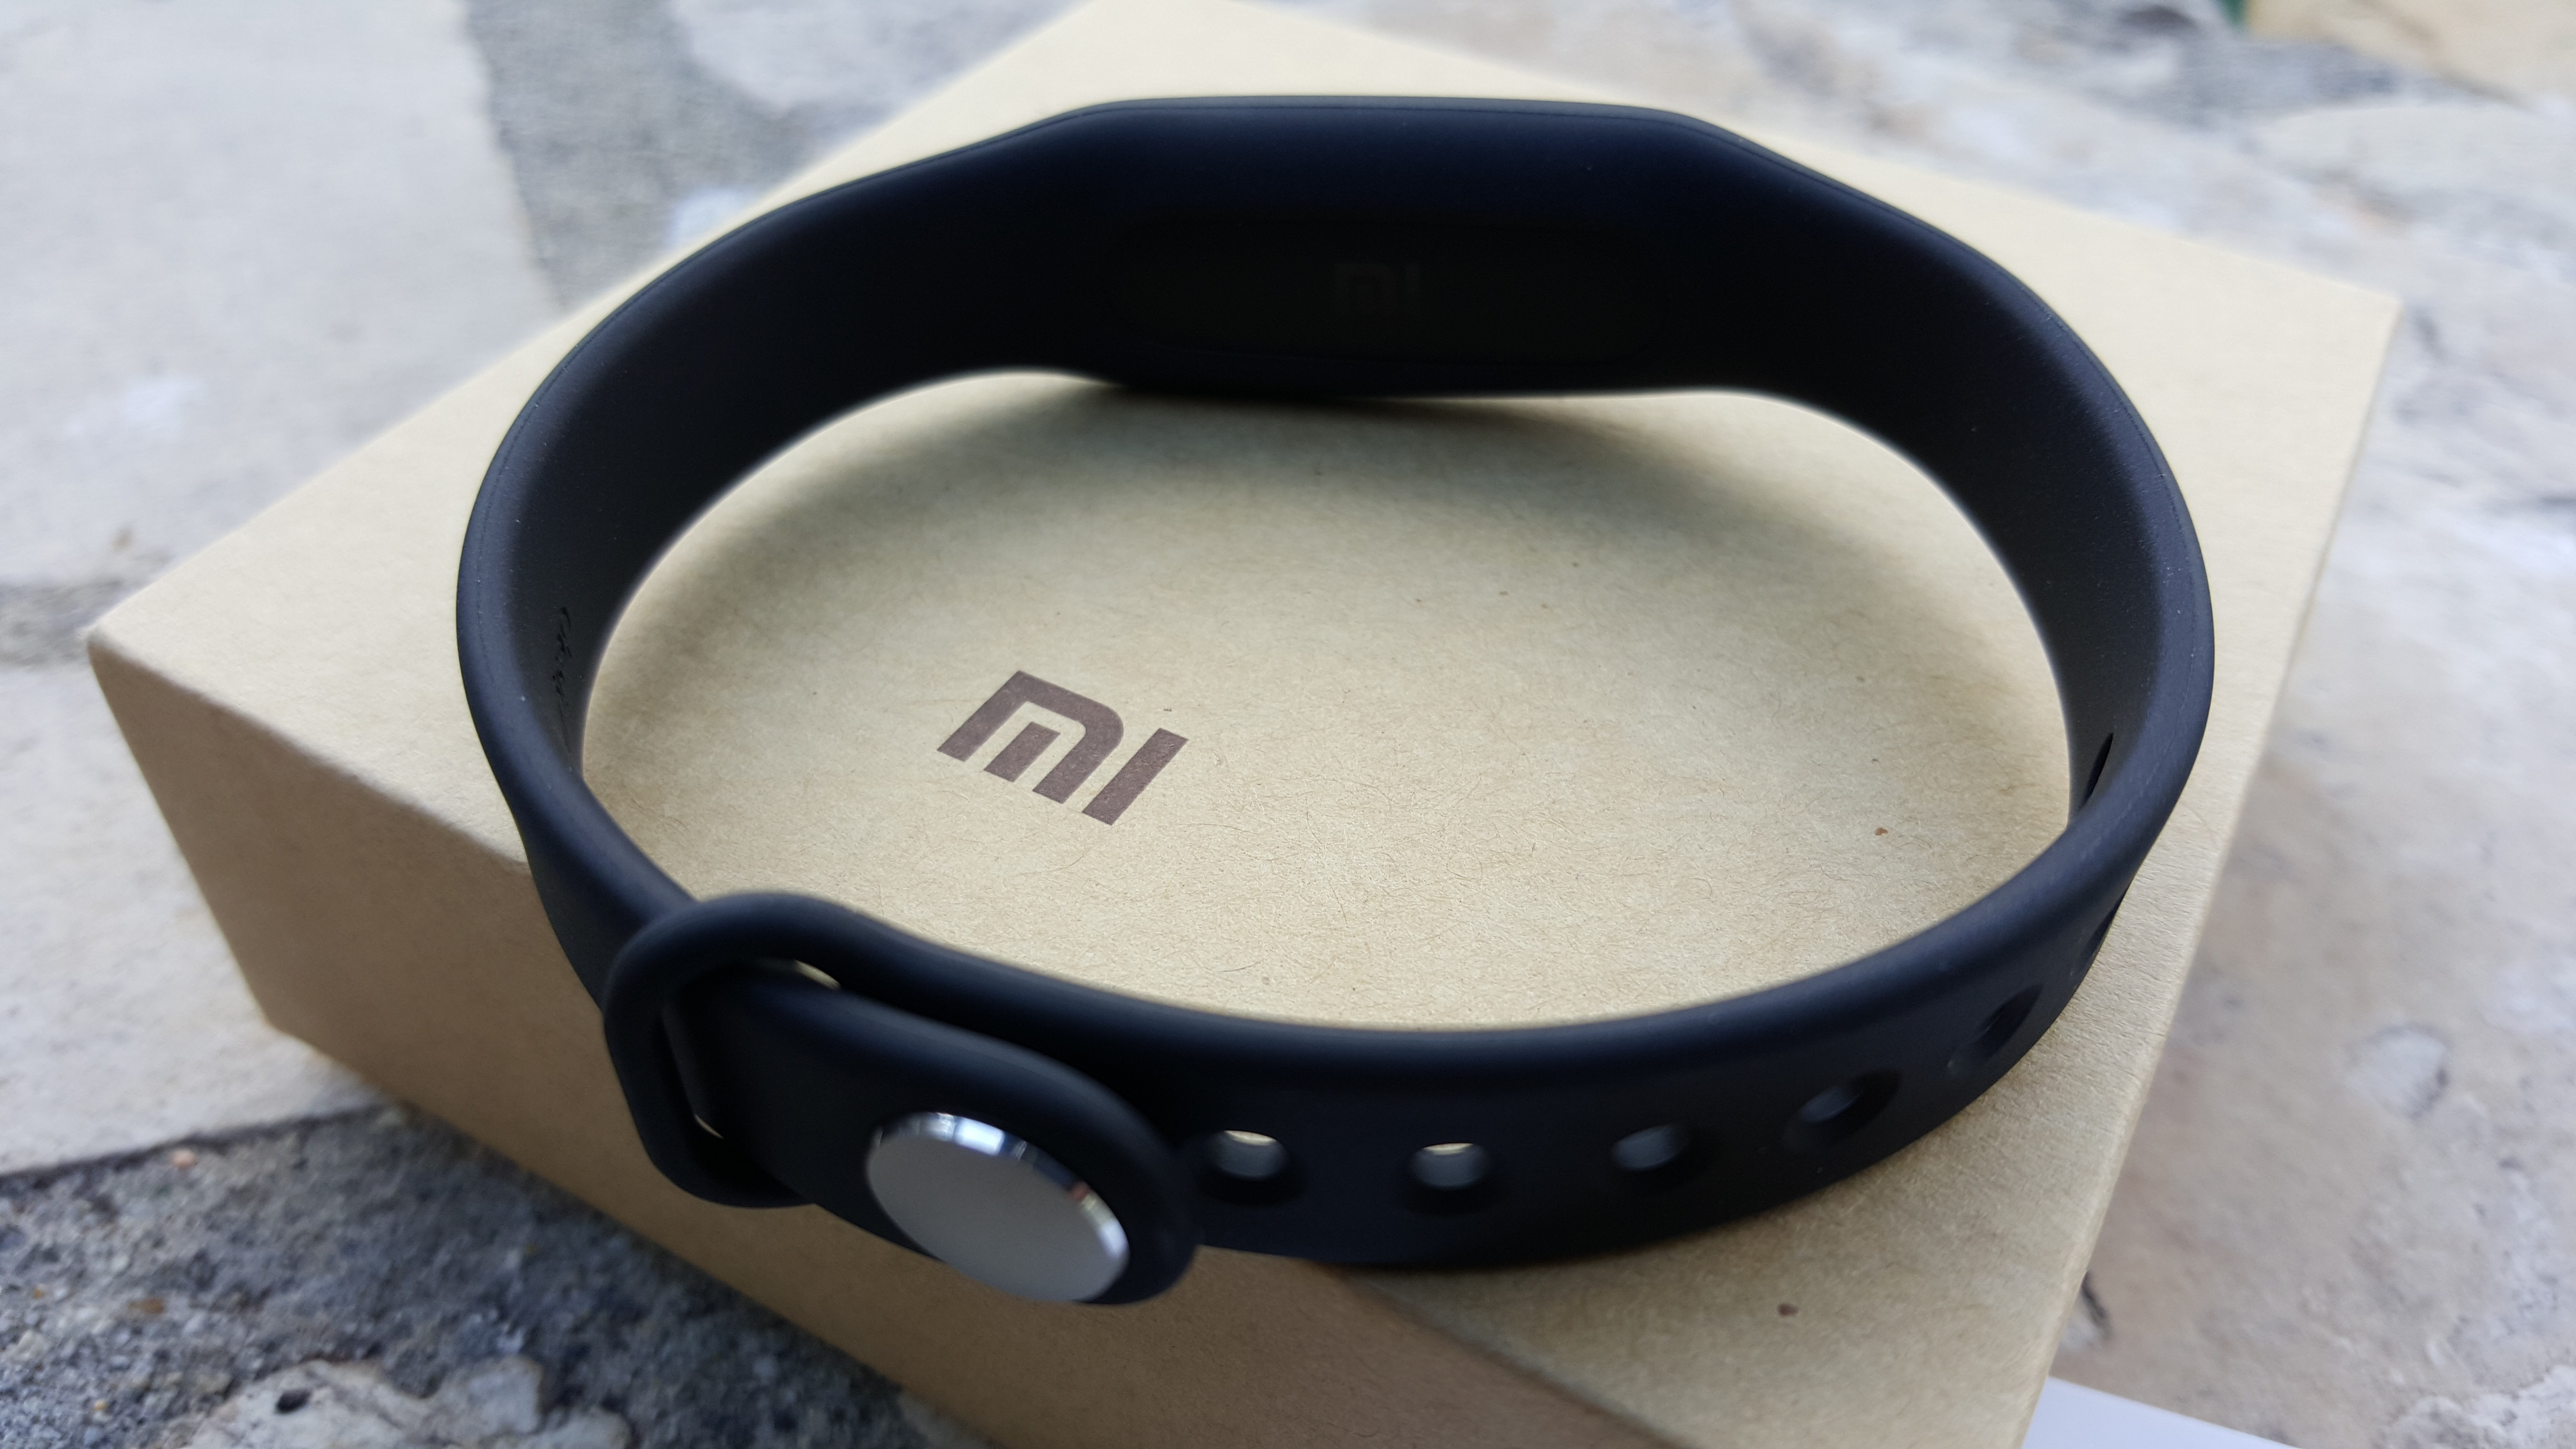 Recommended For Xiaomi Mi Band By Xiaomi